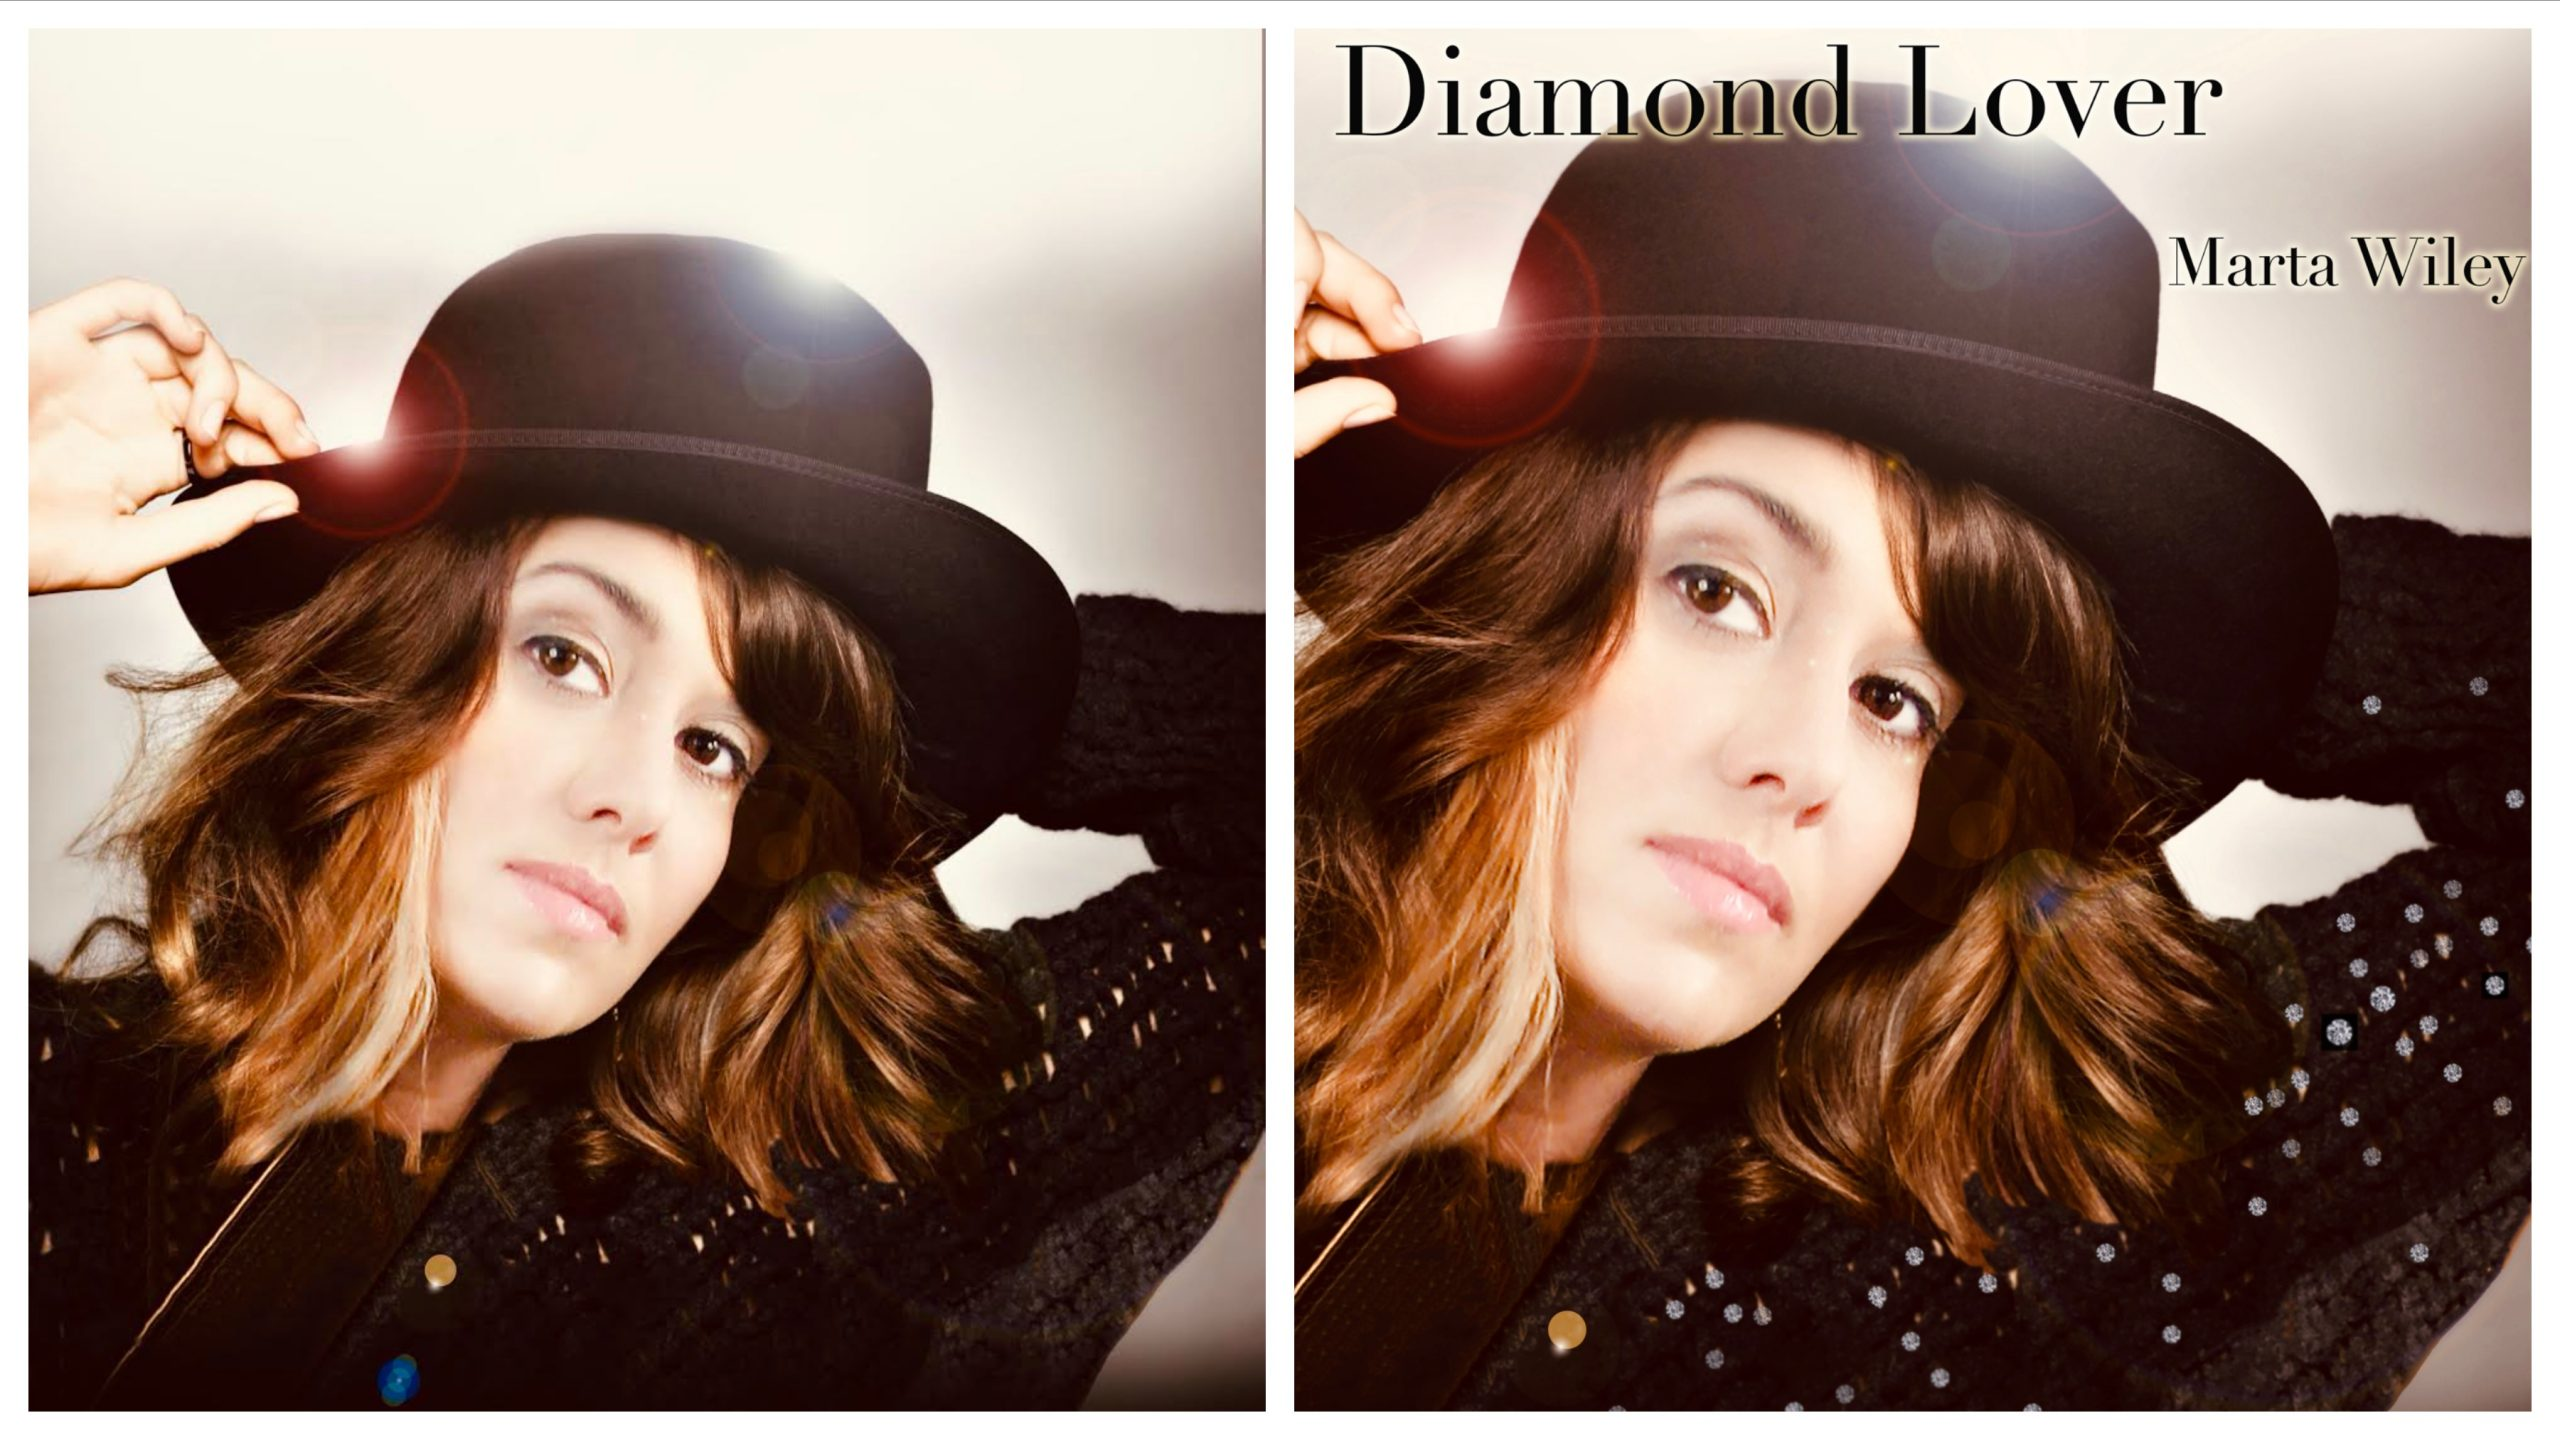 ARTIST MARTA WILEY HAS RELEASED A NEW SINGLE CALLED 'DIAMOND LOVER' WHICH HAS A JAMES BOND 007 FEEL TO IT